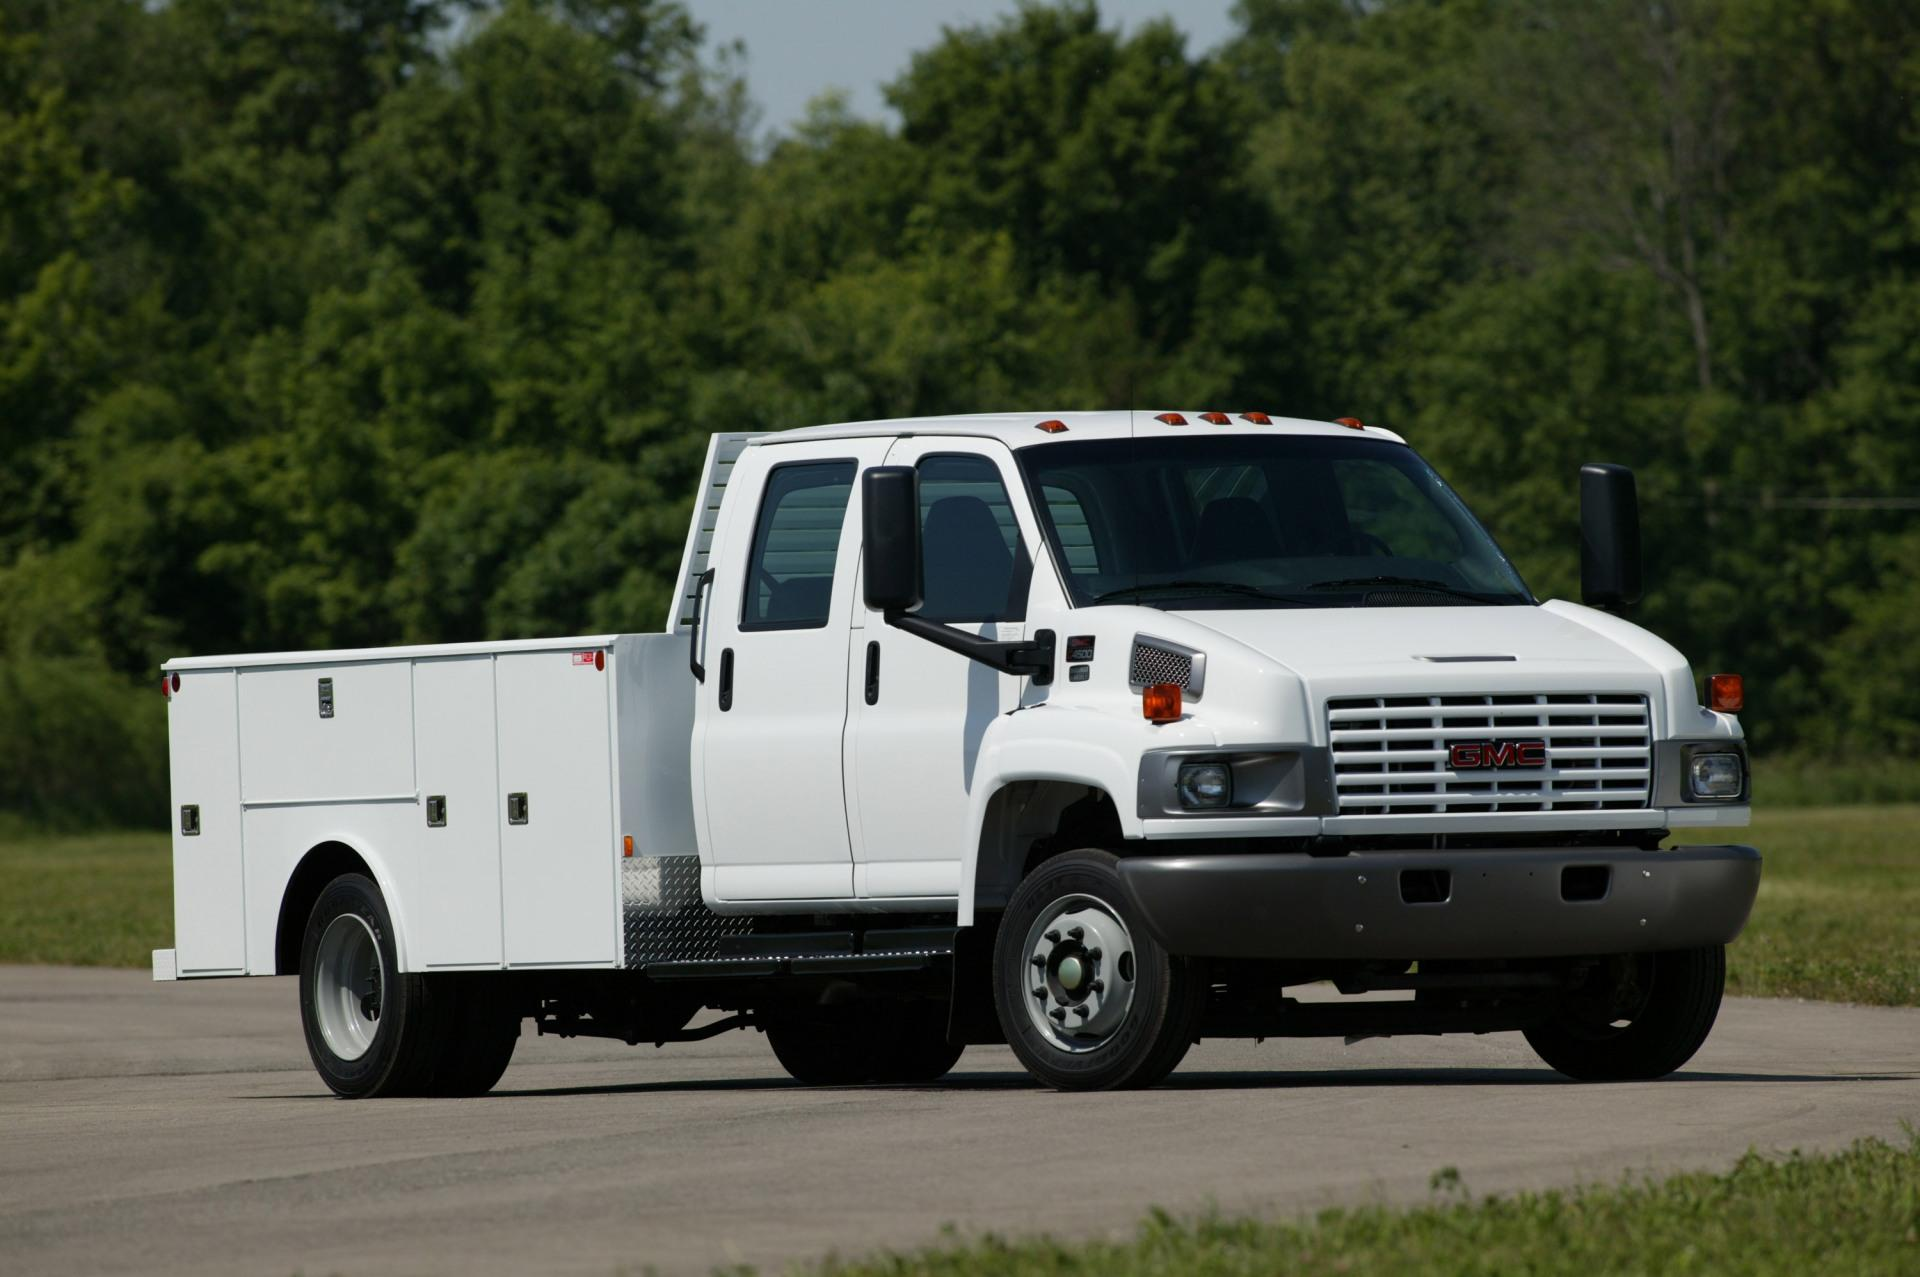 Chevy 5500 Hd >> 2003 GMC TopKick Pictures, History, Value, Research, News - conceptcarz.com